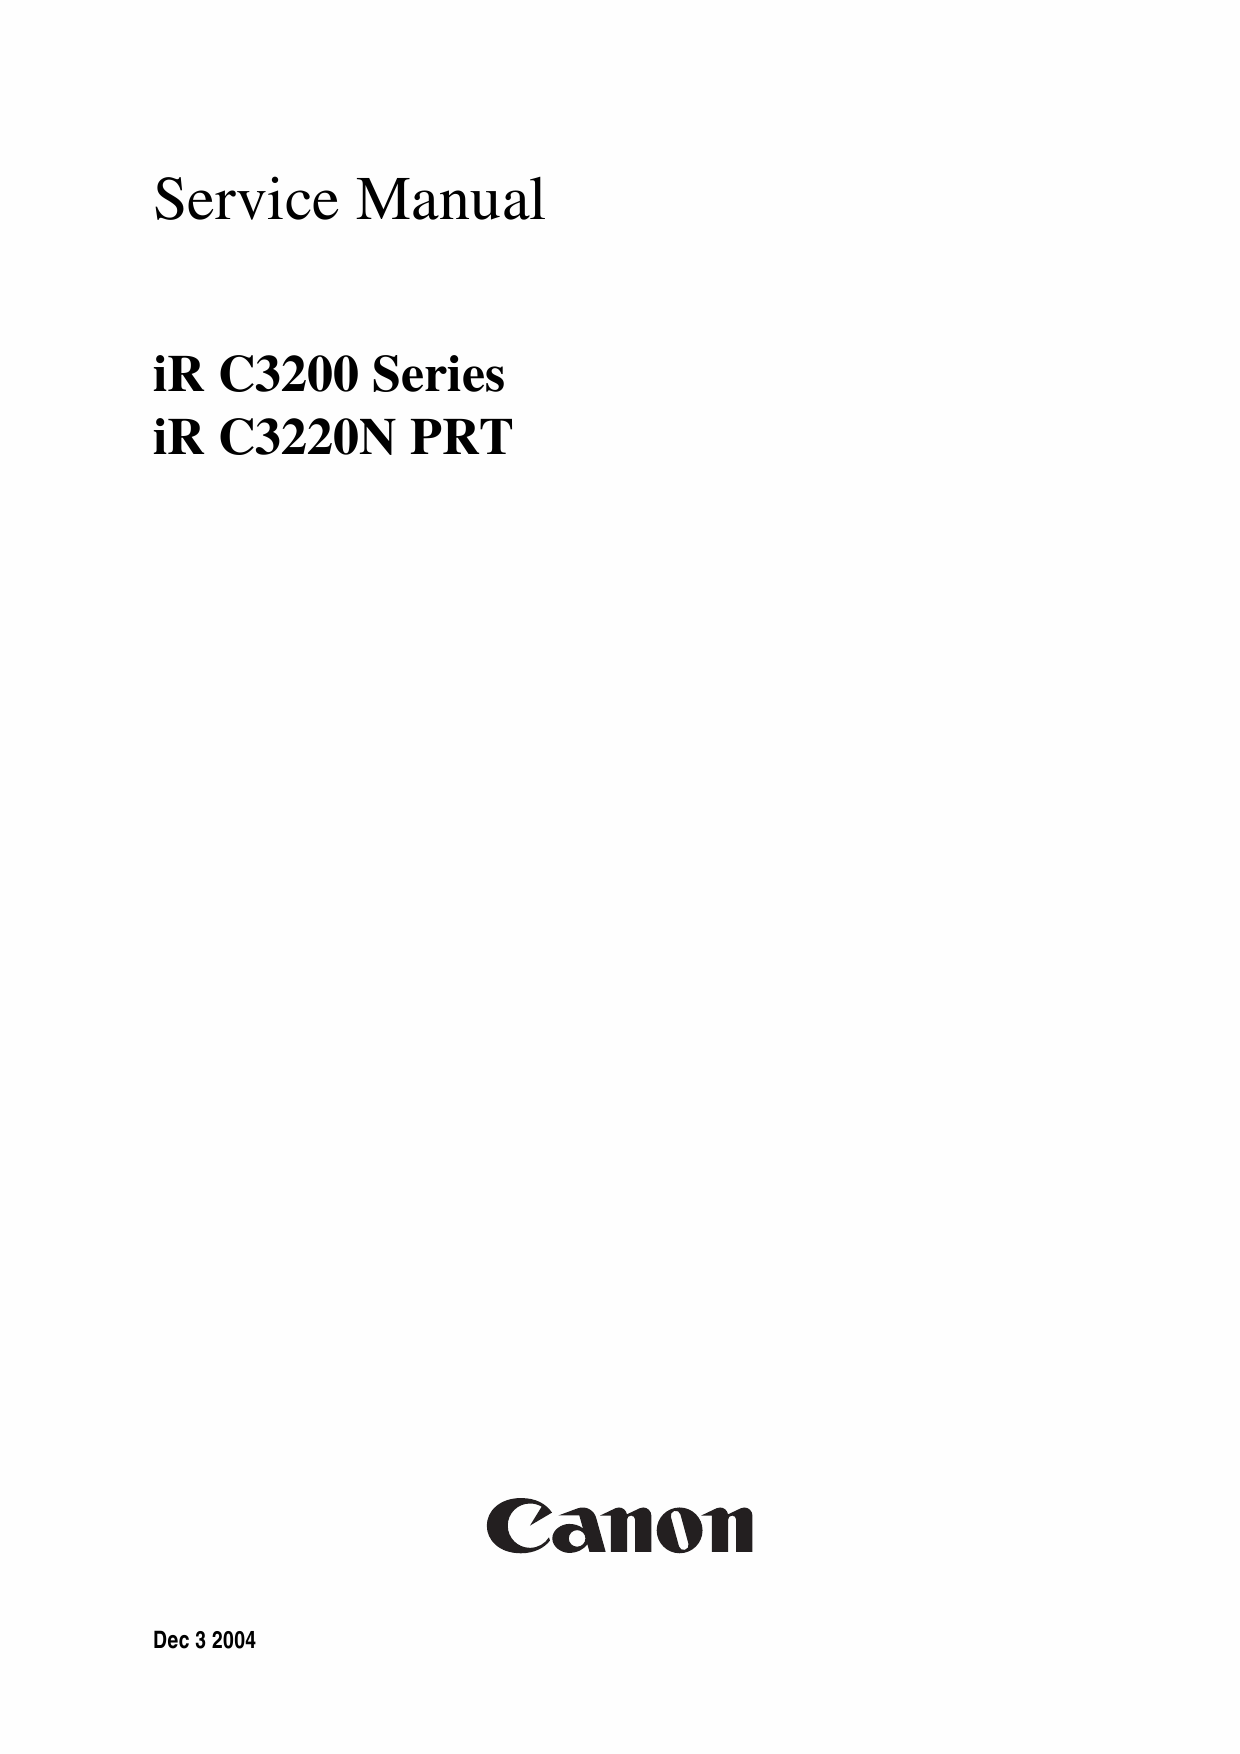 Canon imageRUNNER iR-C3200 C3200N Parts and Service Manual-1